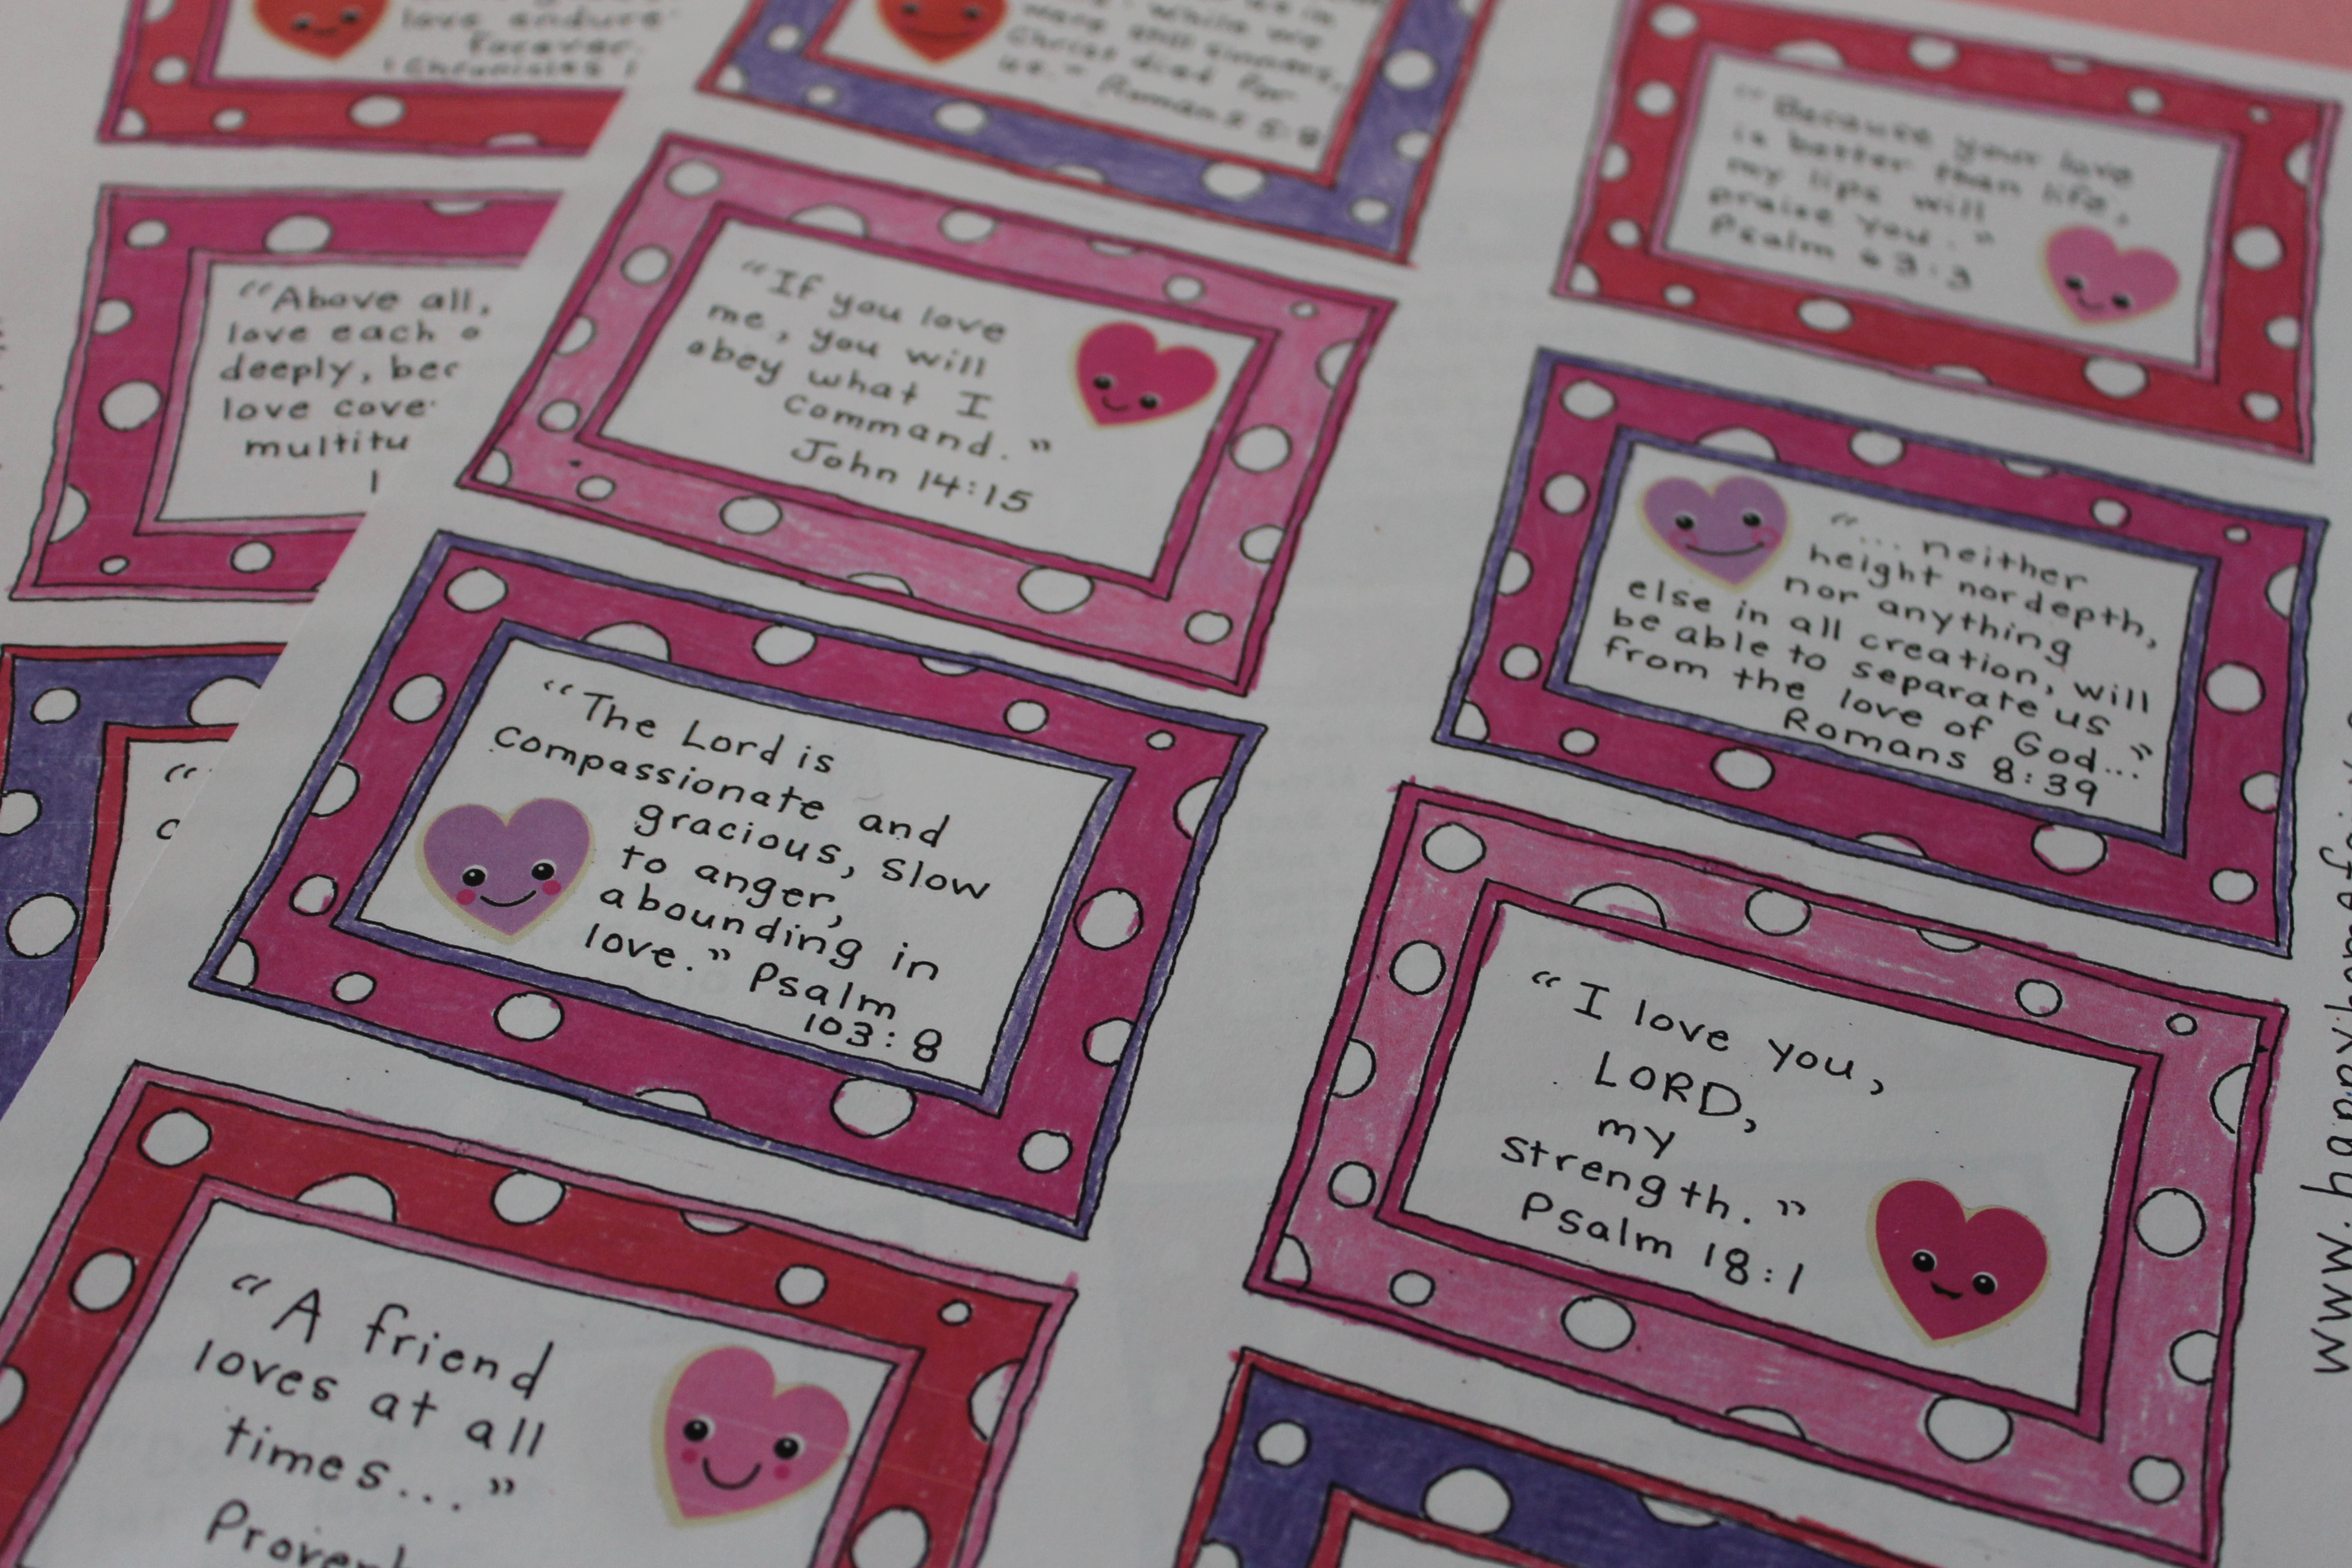 today you can download 14 days worth of free printable bible verse cards that celebrate gods love see bottom of post for download